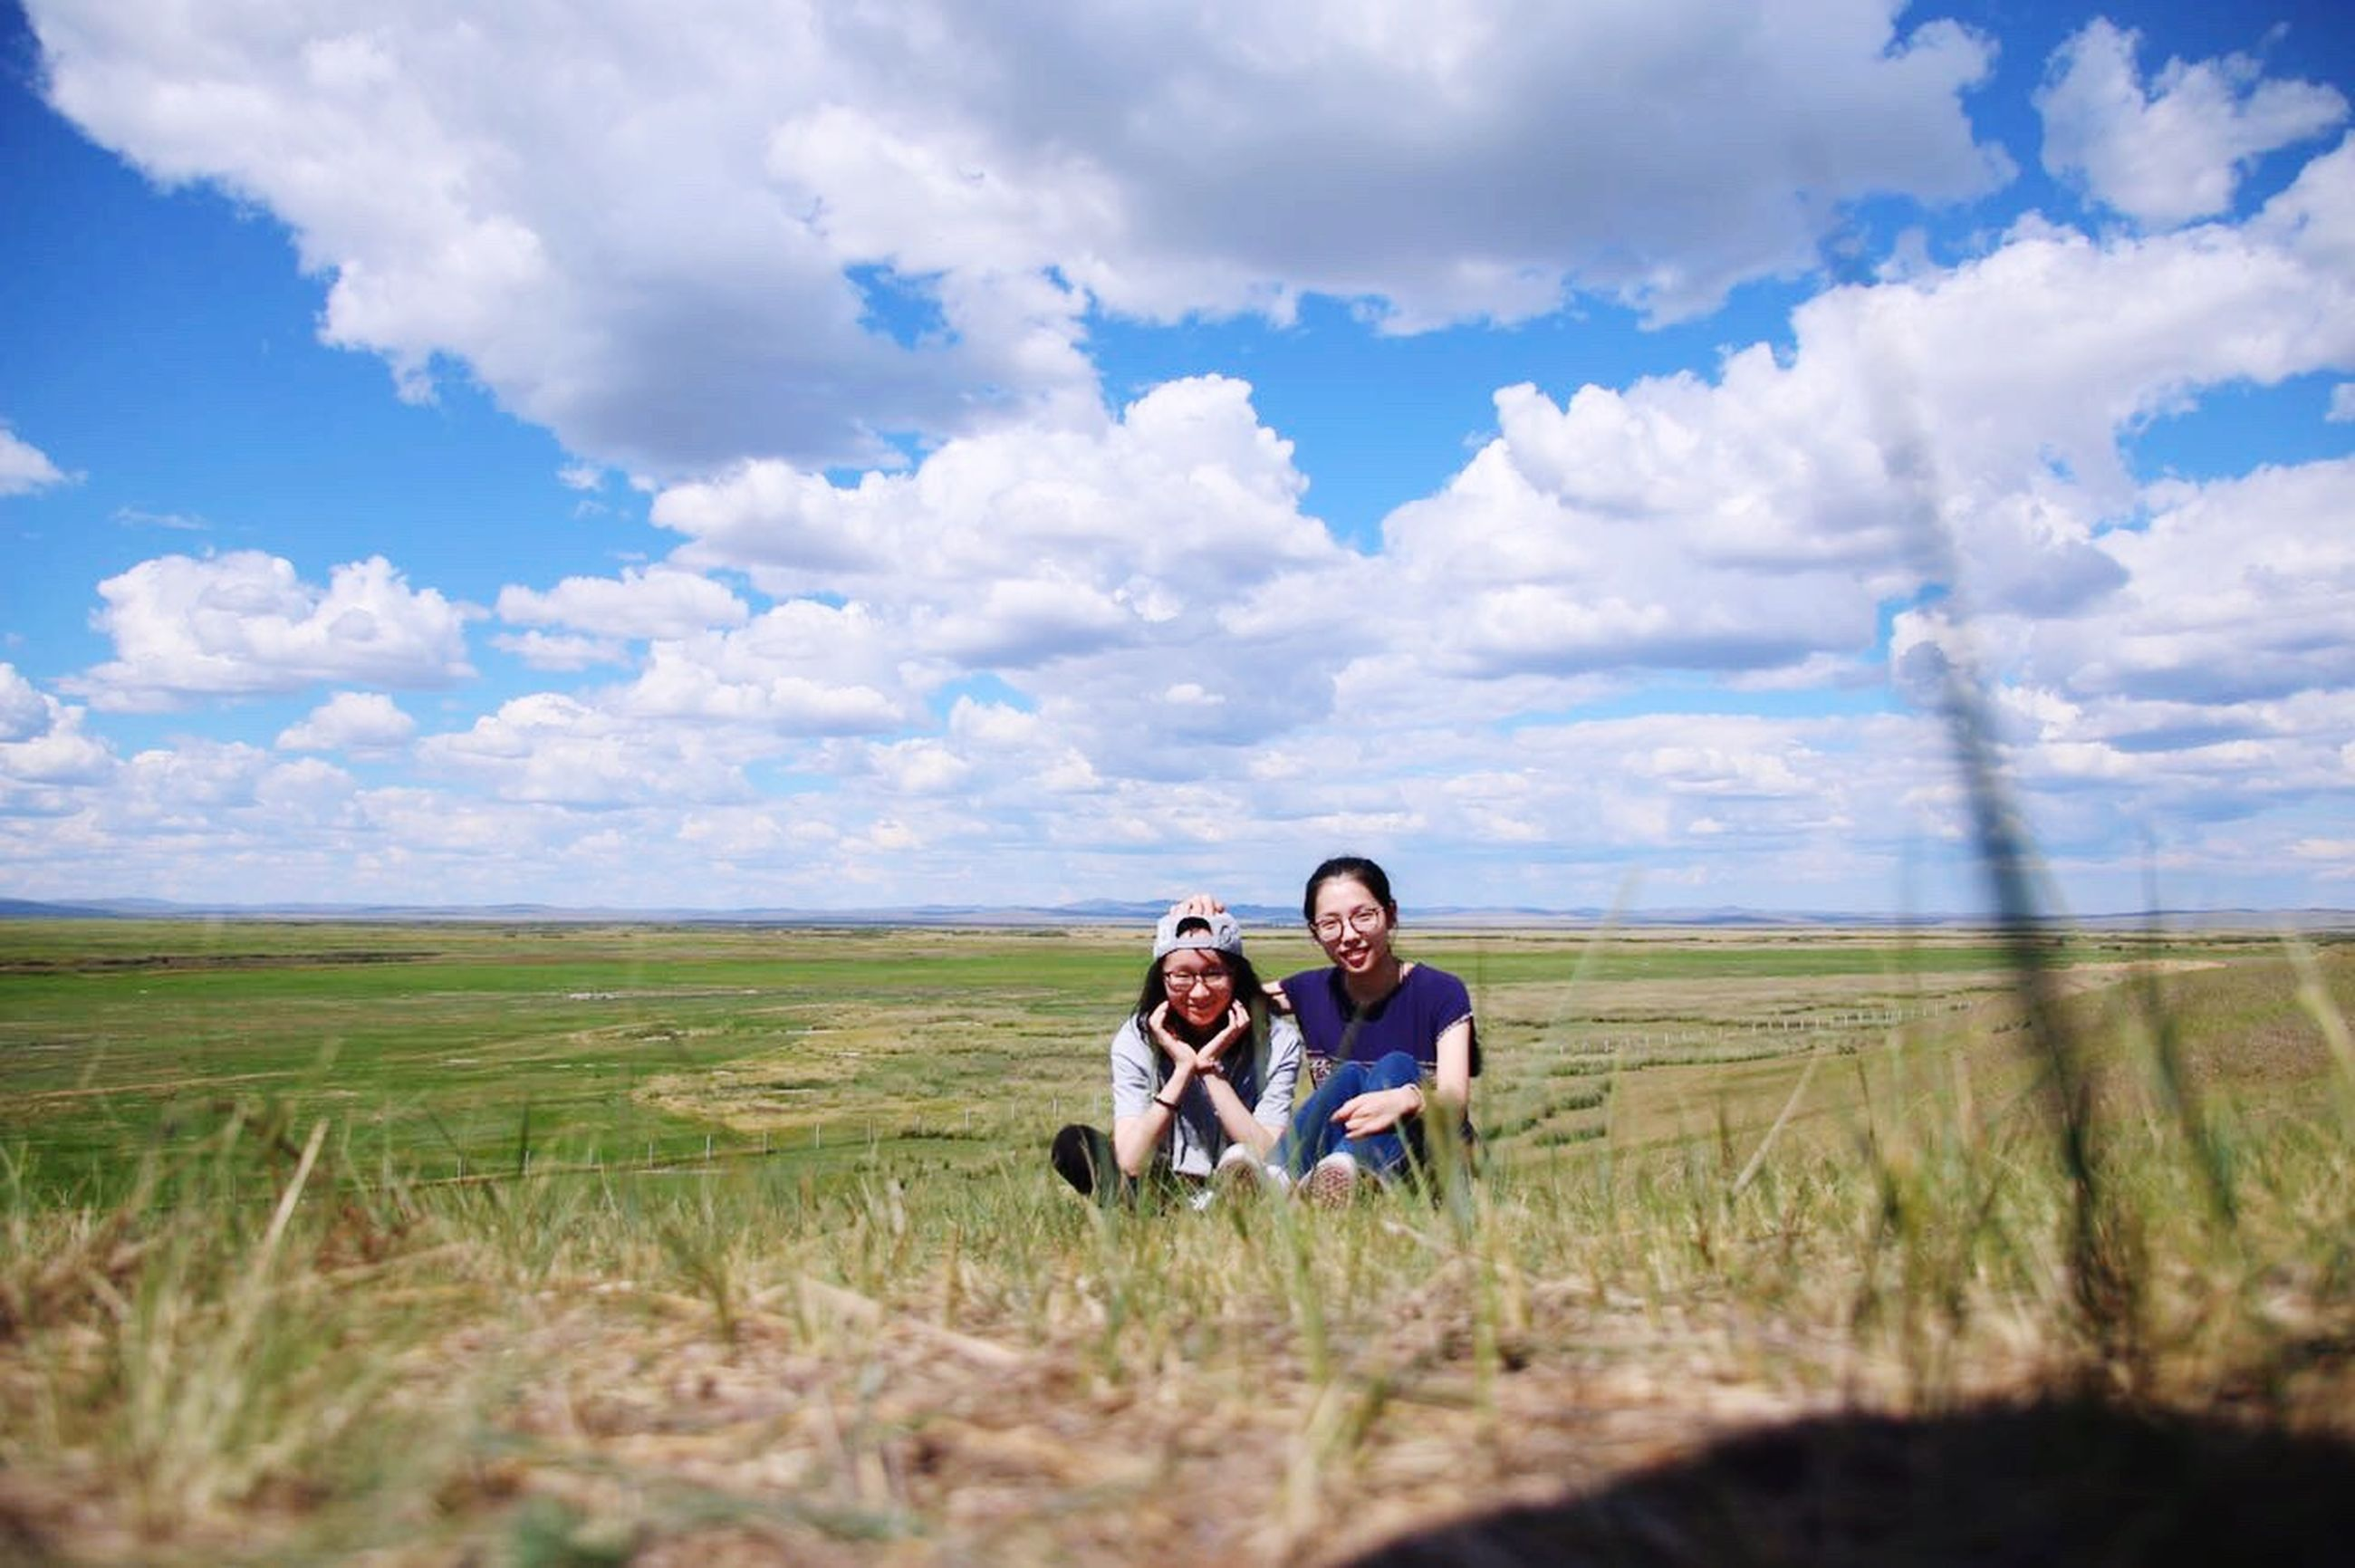 grass, sky, field, landscape, togetherness, cloud - sky, bonding, boys, grassy, family, love, day, casual clothing, friendship, rural scene, nature, tranquility, green color, surface level, horizon over land, person, outdoors, cumulus cloud, tranquil scene, single mother, growth, beauty in nature